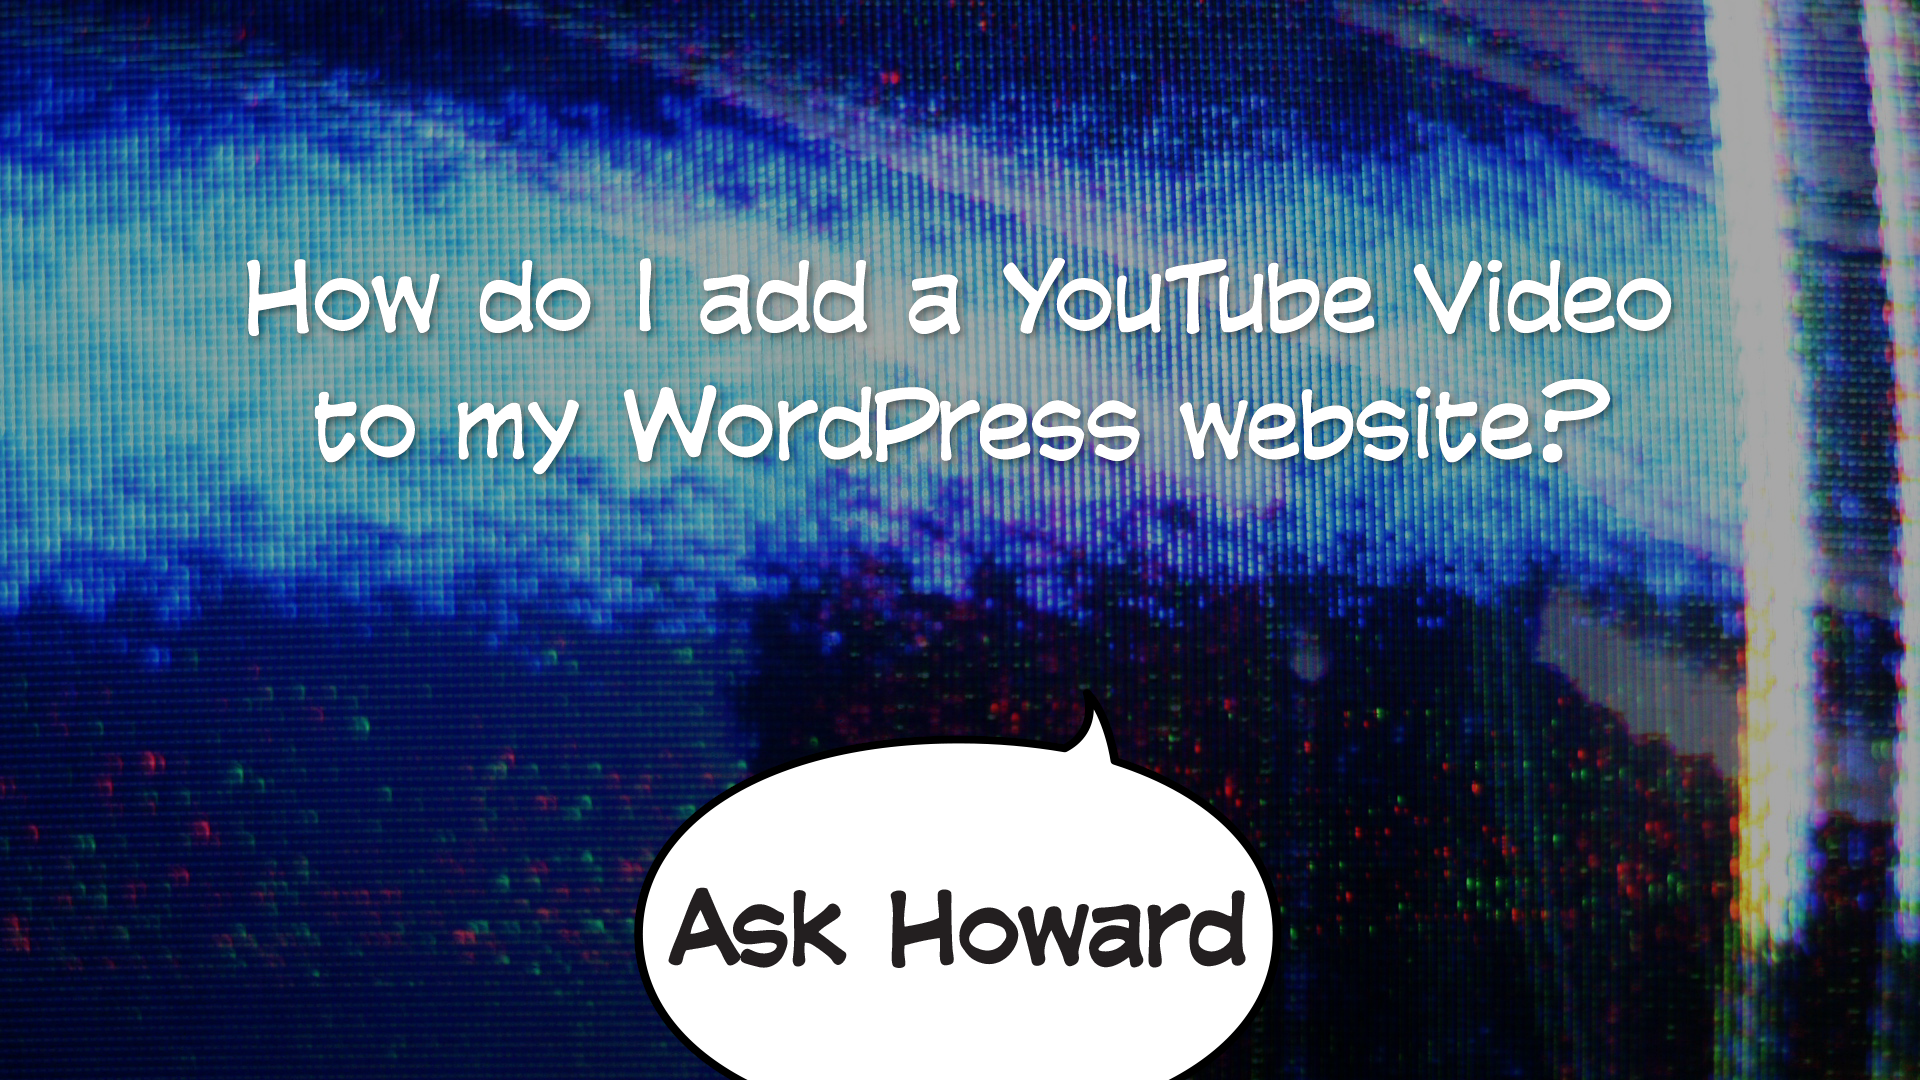 How to embed video content on your WordPress website - Ask Howard Episode 2